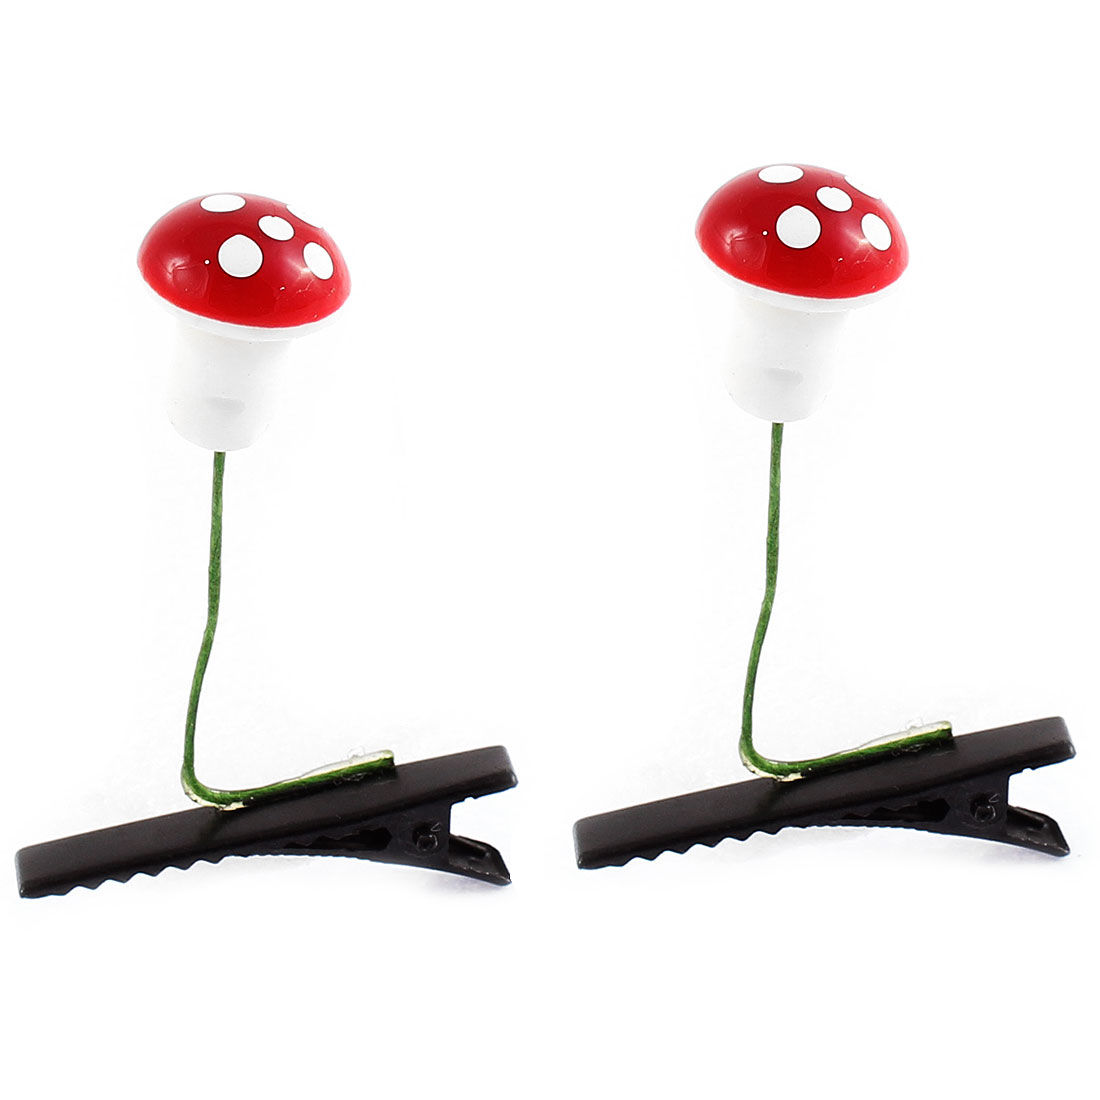 Lady Plastic Mushroom Detail Party Alligator Hair Clip Barrette Red White Pair